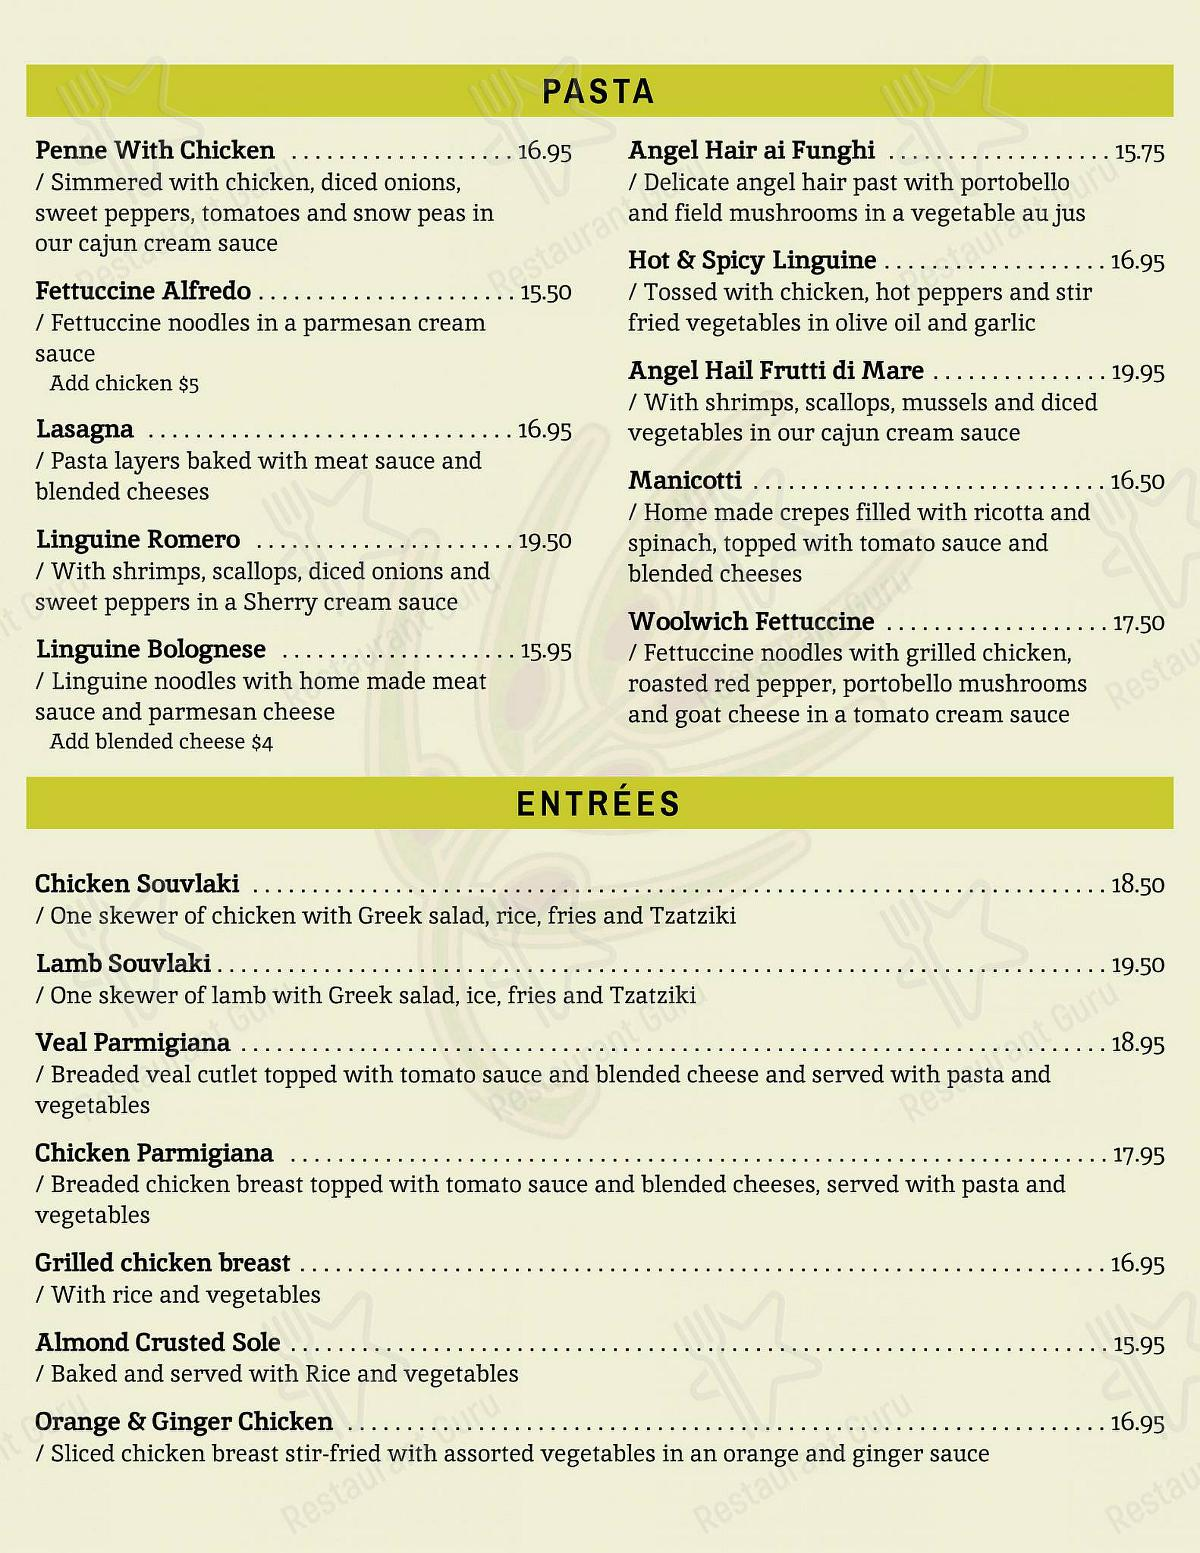 Check out the menu for ROMERO'S RESTAURANT